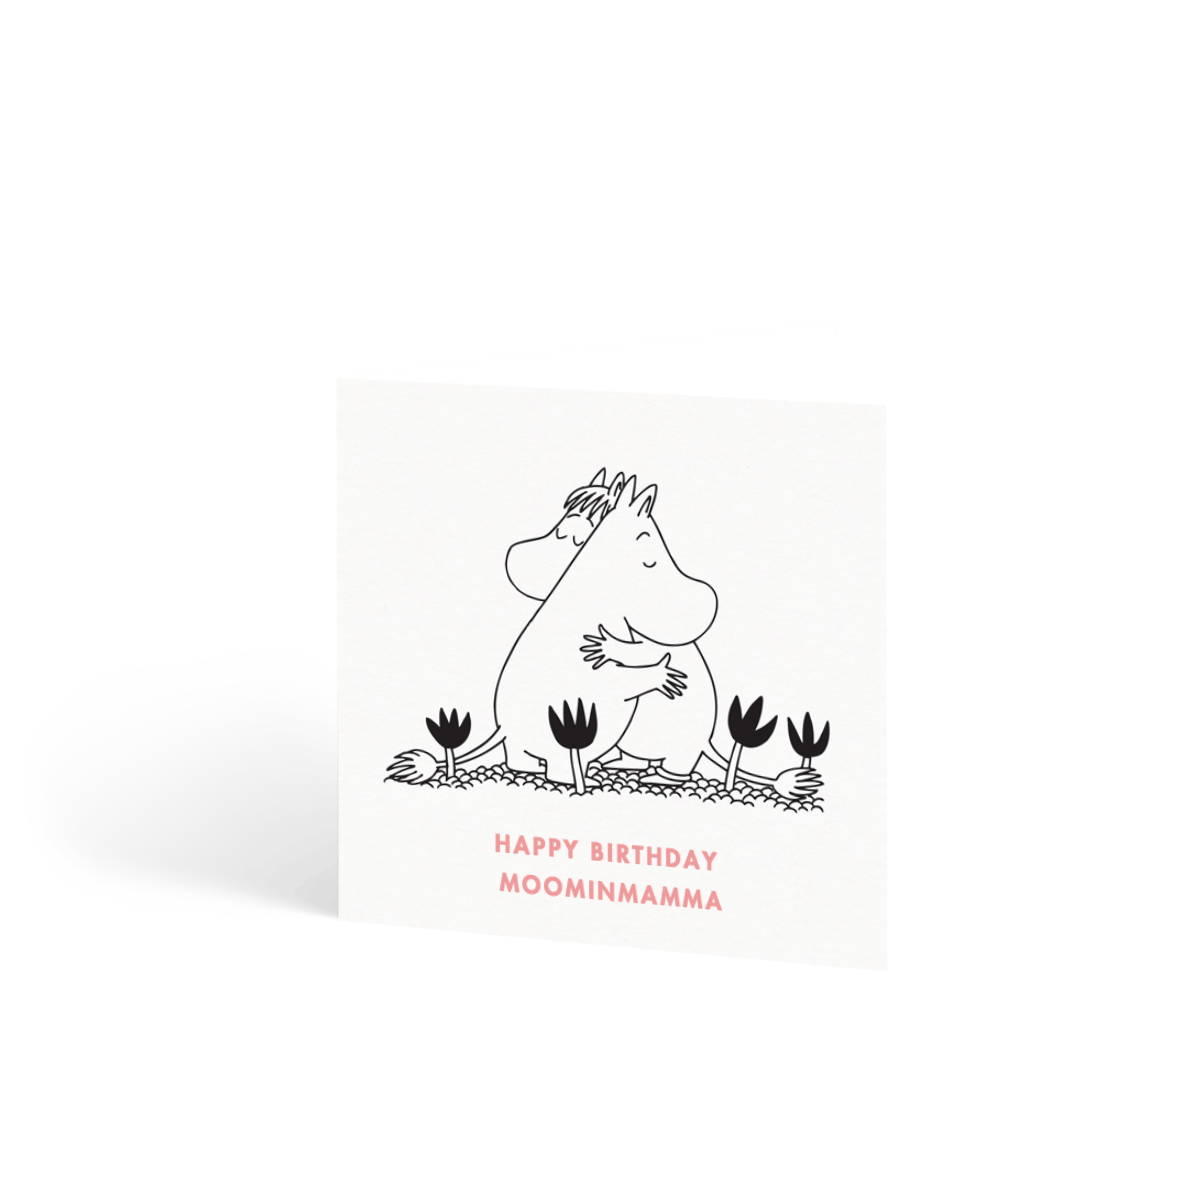 Https%3a%2f%2fwww.papier.com%2fproduct image%2f49171%2f16%2fmoomin love 12094 vorderseite 1539343210.png?ixlib=rb 1.1